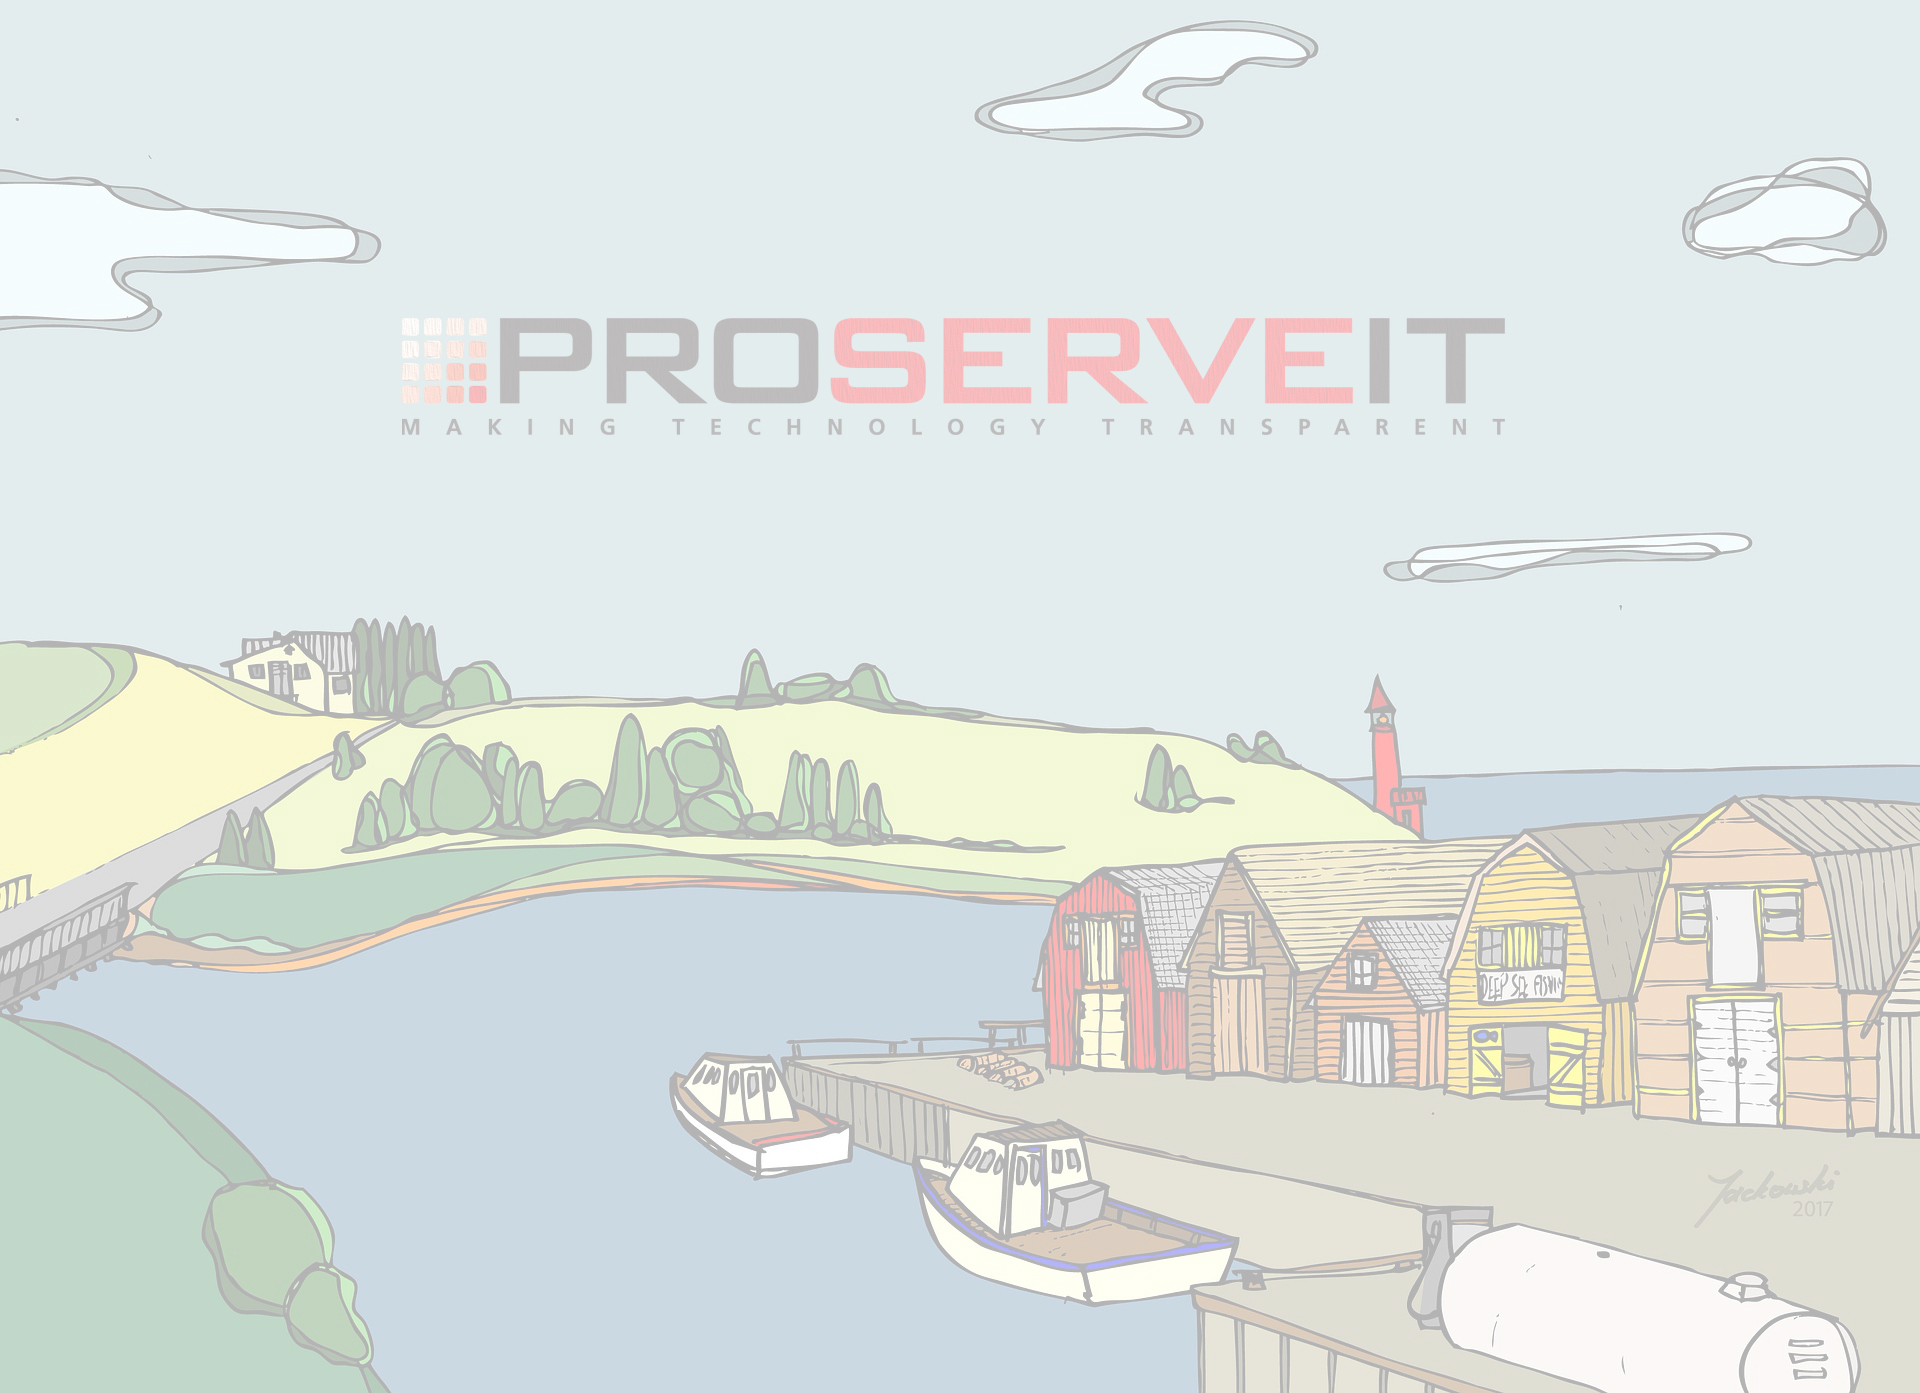 ProServeIT Coropration Opens New Office in Prince Edward Island